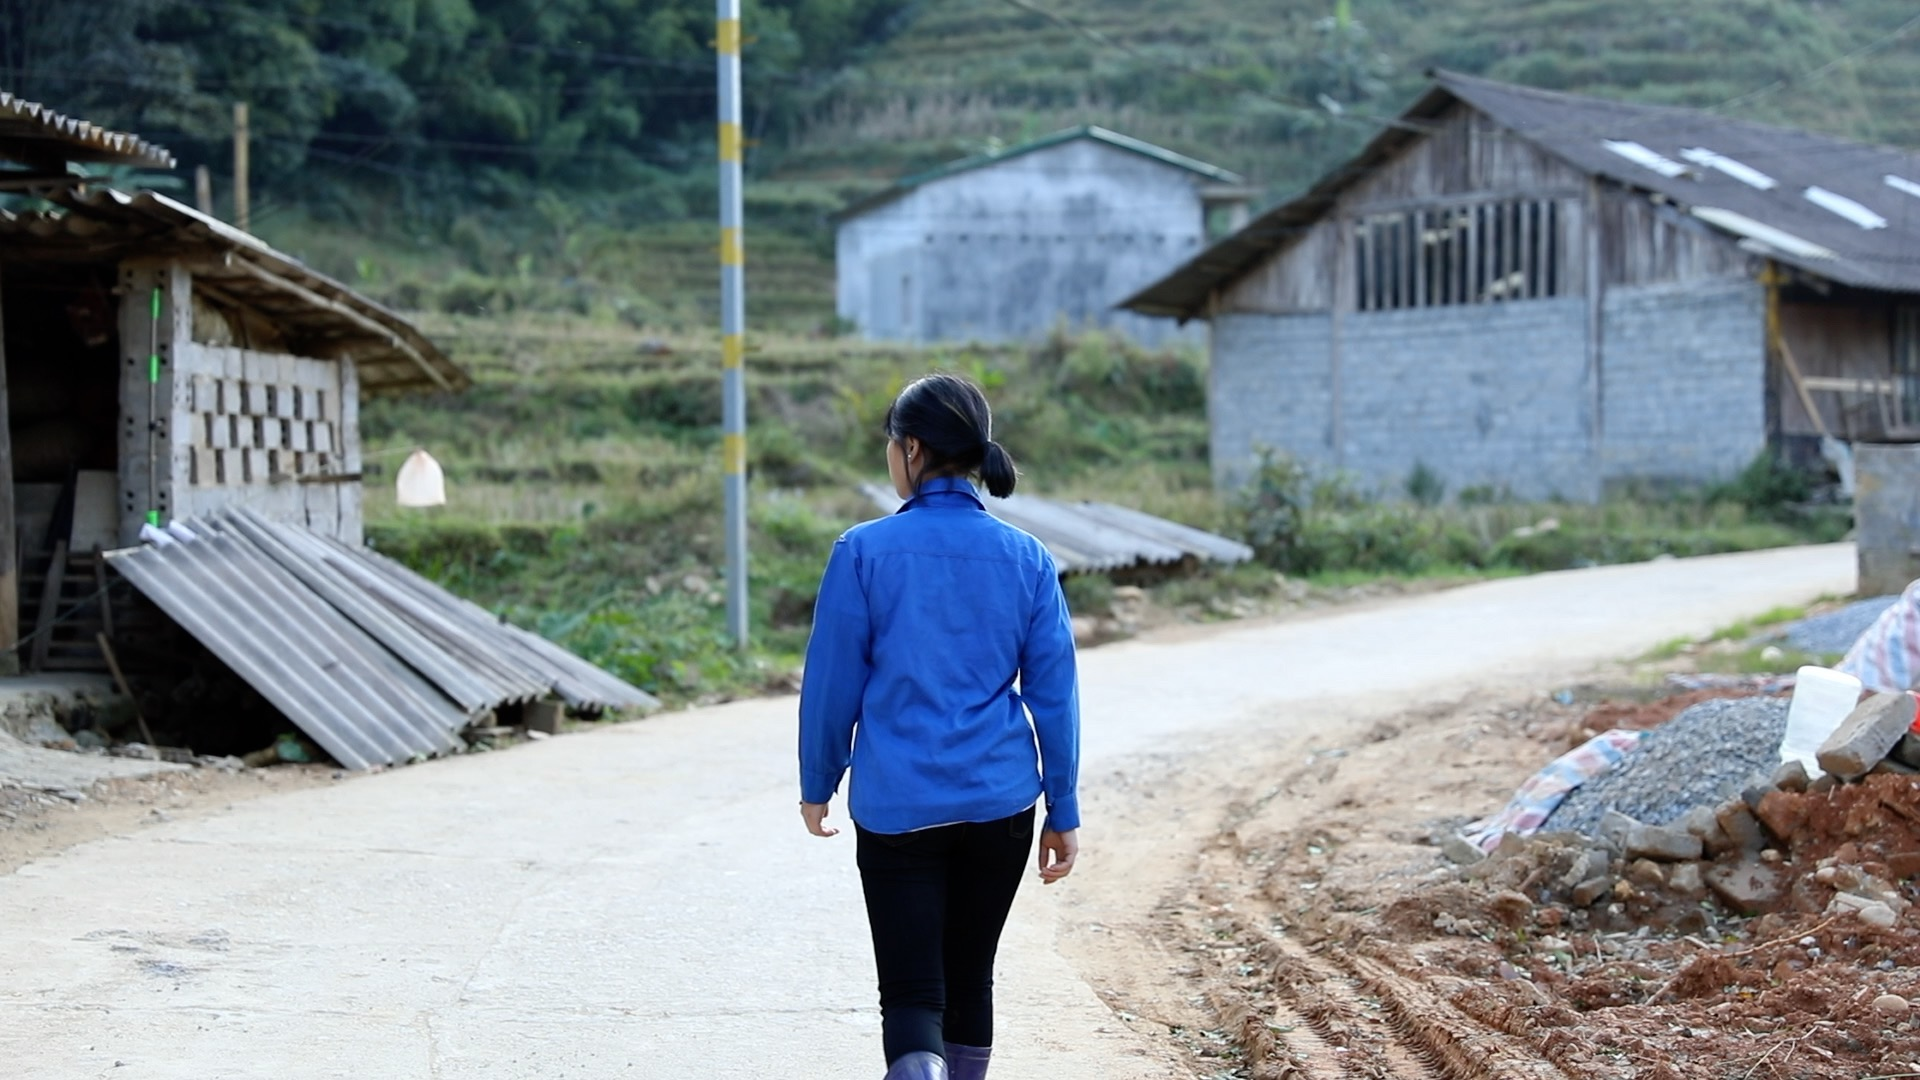 The victims, often girls or young women, are lured into thinking they are travelling with a friend, taken across the nearby border into China and often end up being sold into a forced marriage or a brothel.